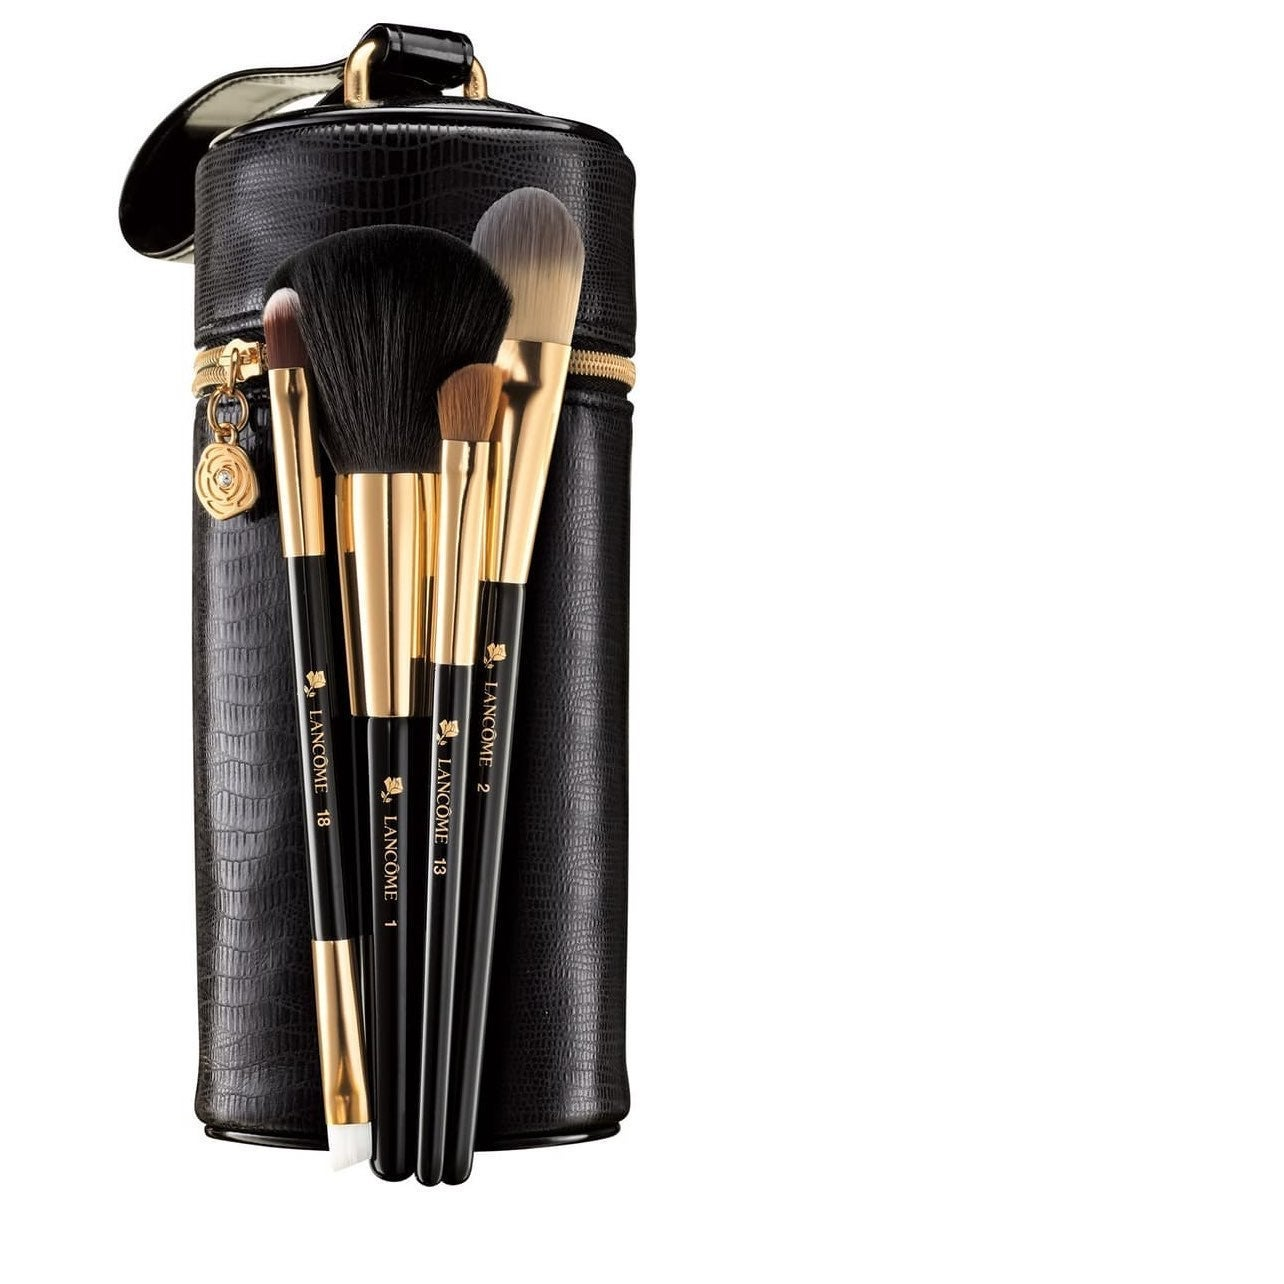 Lancôme 'Pro Secrets' Brush Set